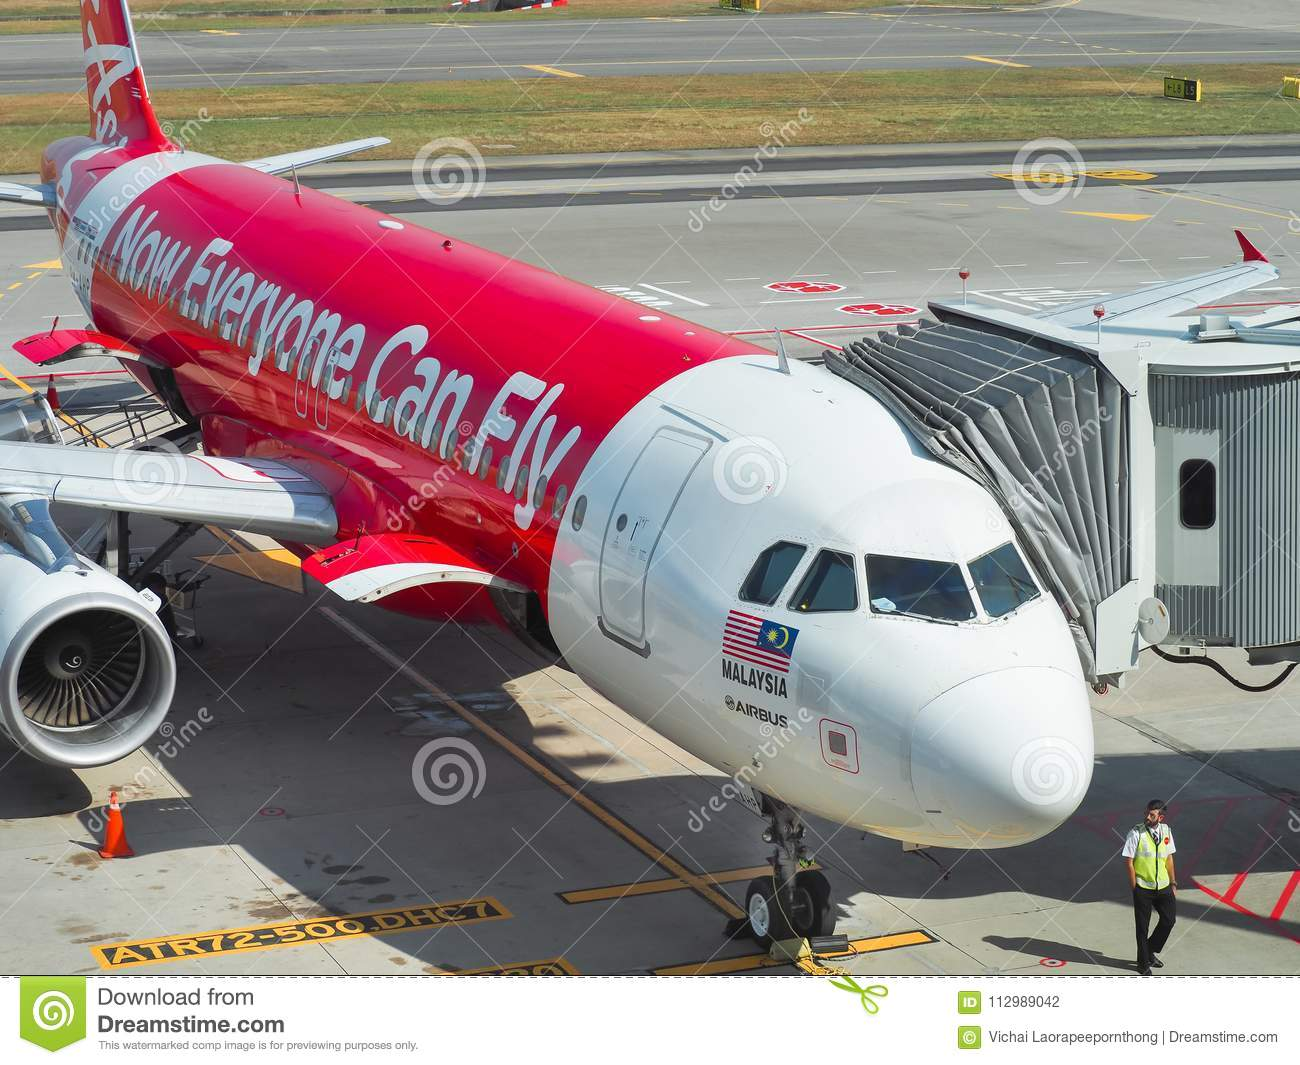 Aircraft of the Air Asia Airline waiting for passengers